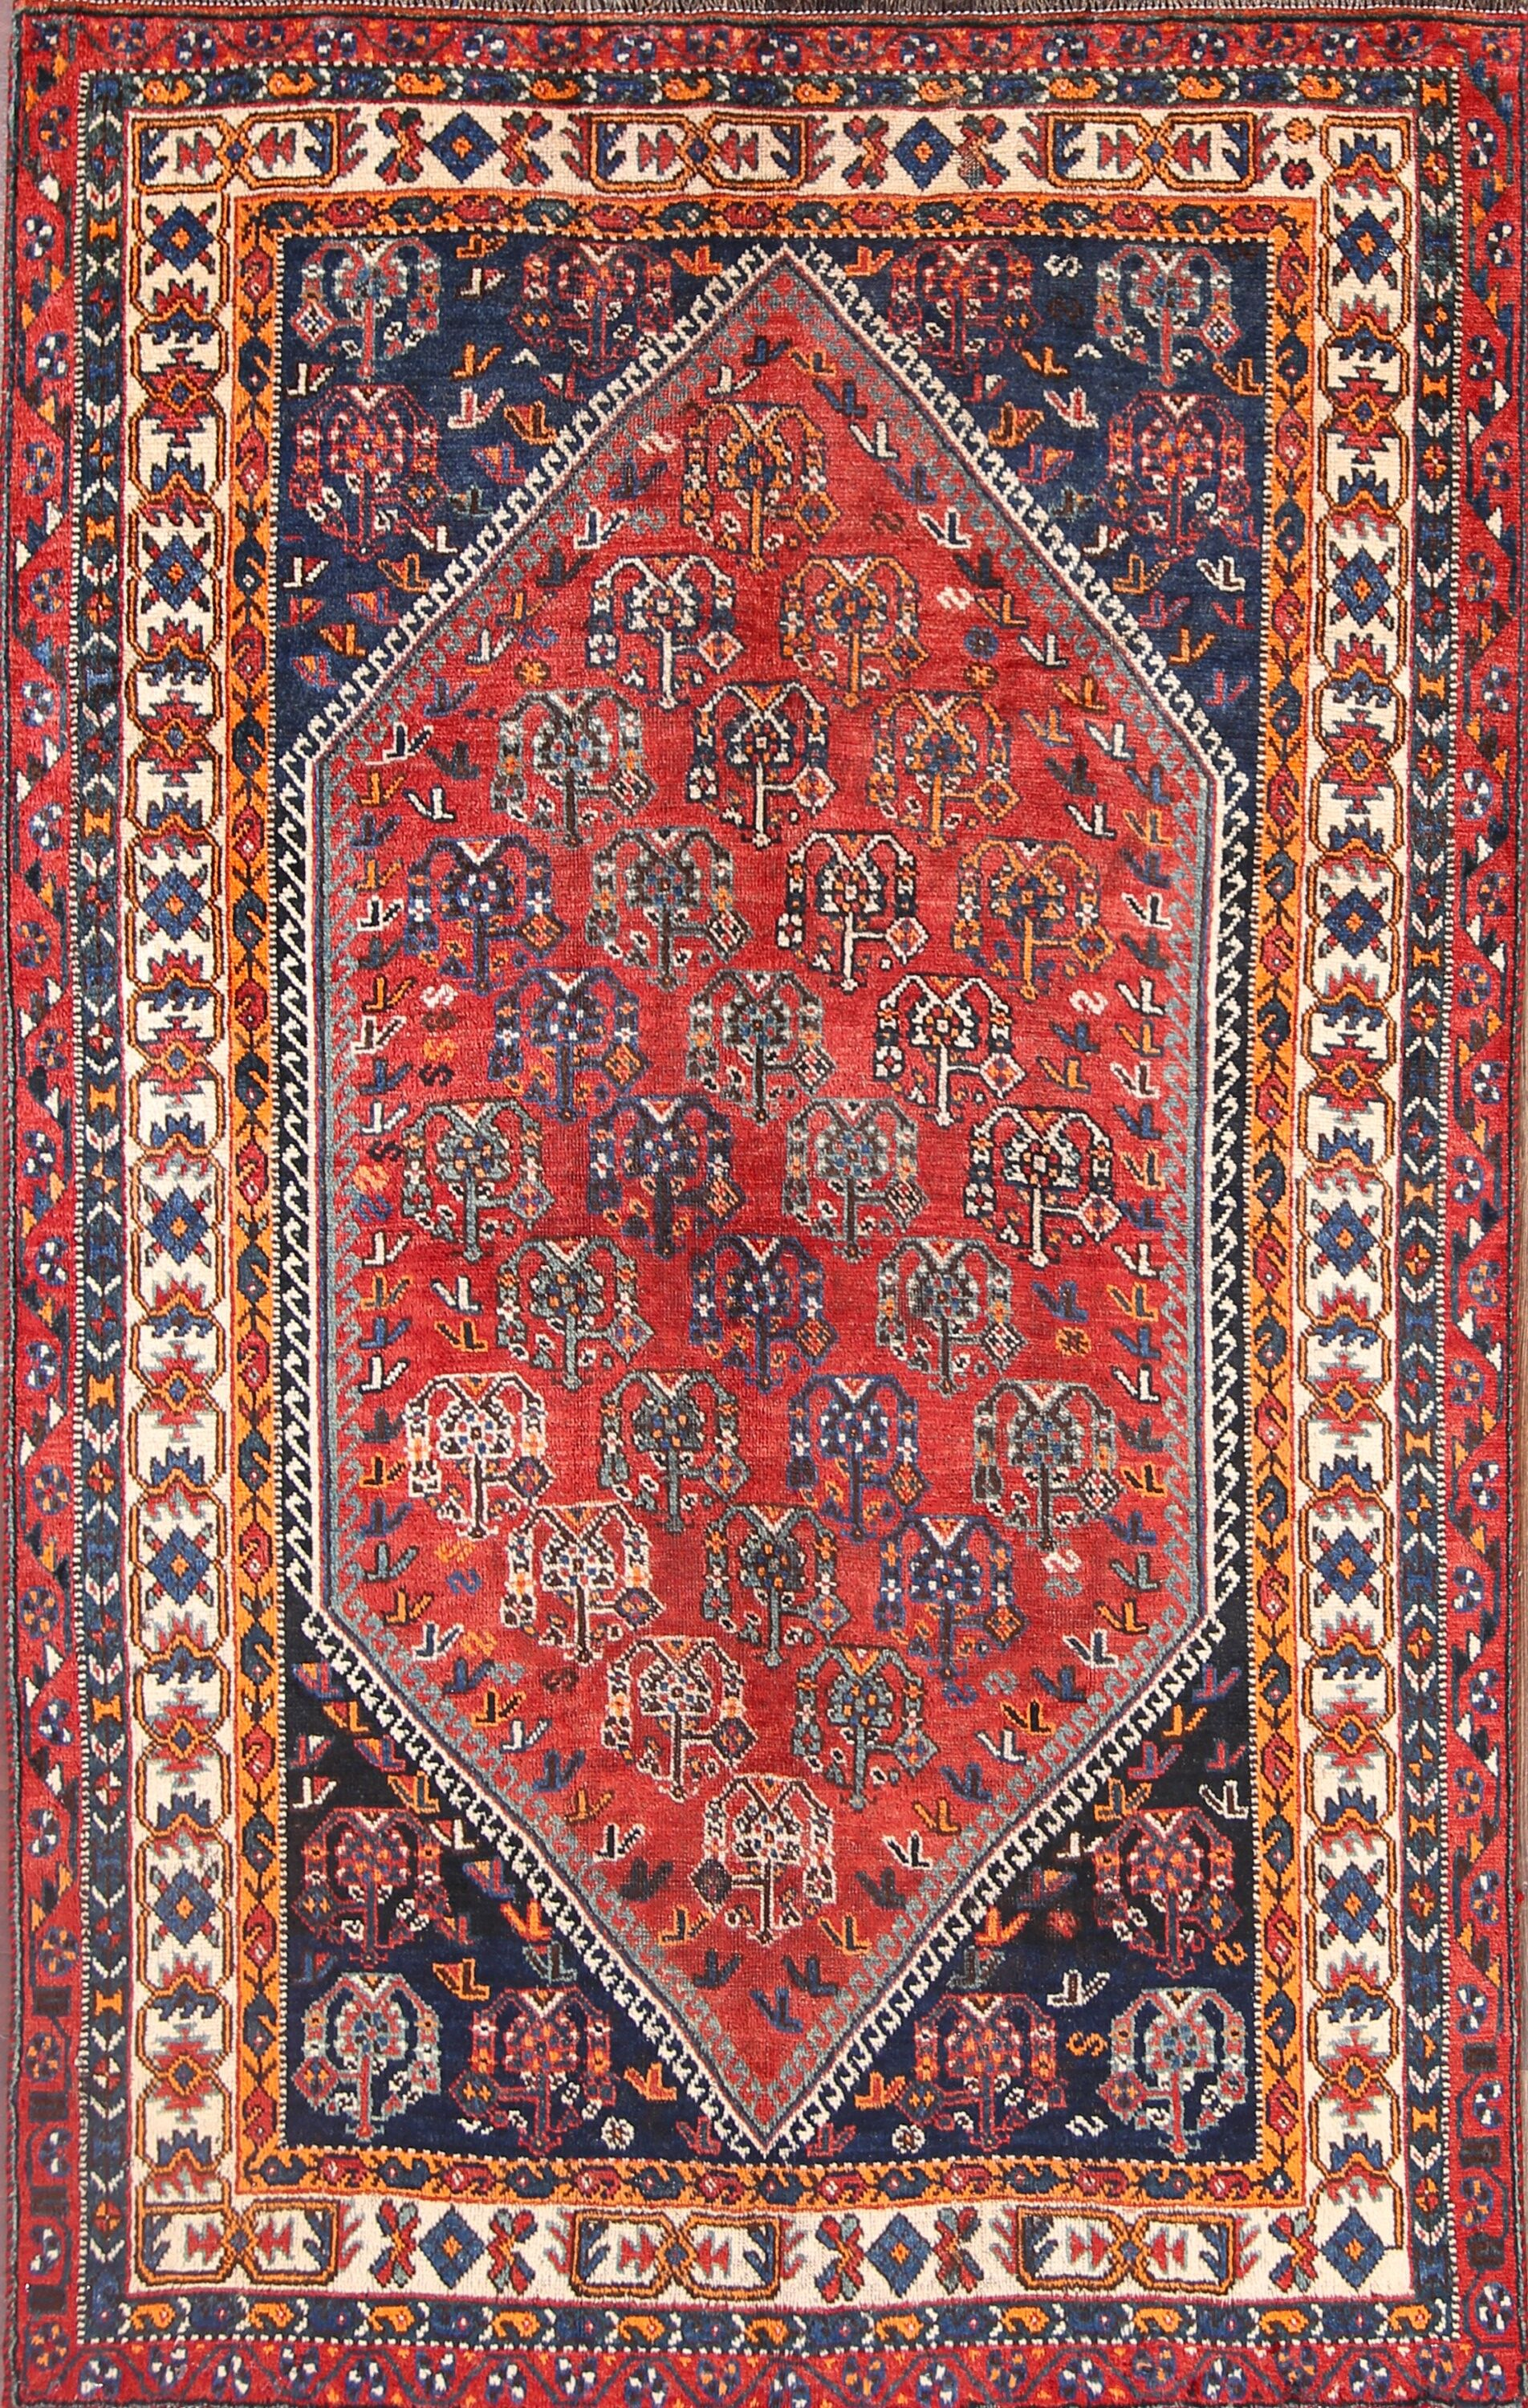 One-of-a-Kind Tribal Lori Shiraz Persian Hand-Knotted 5' x 8'2